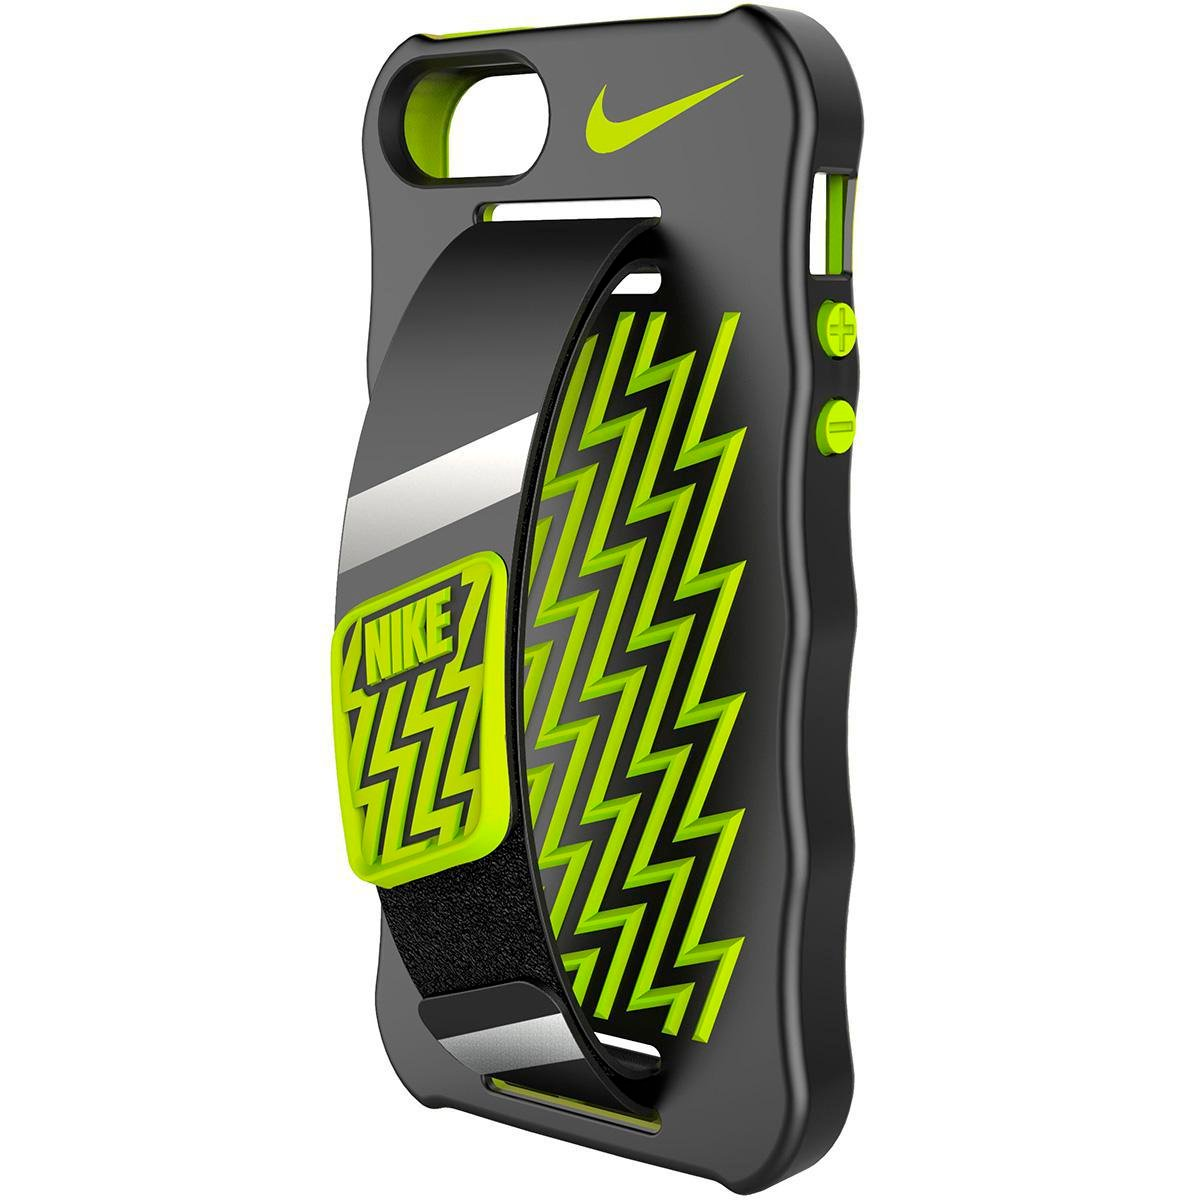 nike iphone 5s case nike handheld phone for iphone 5 5s black volt 15768